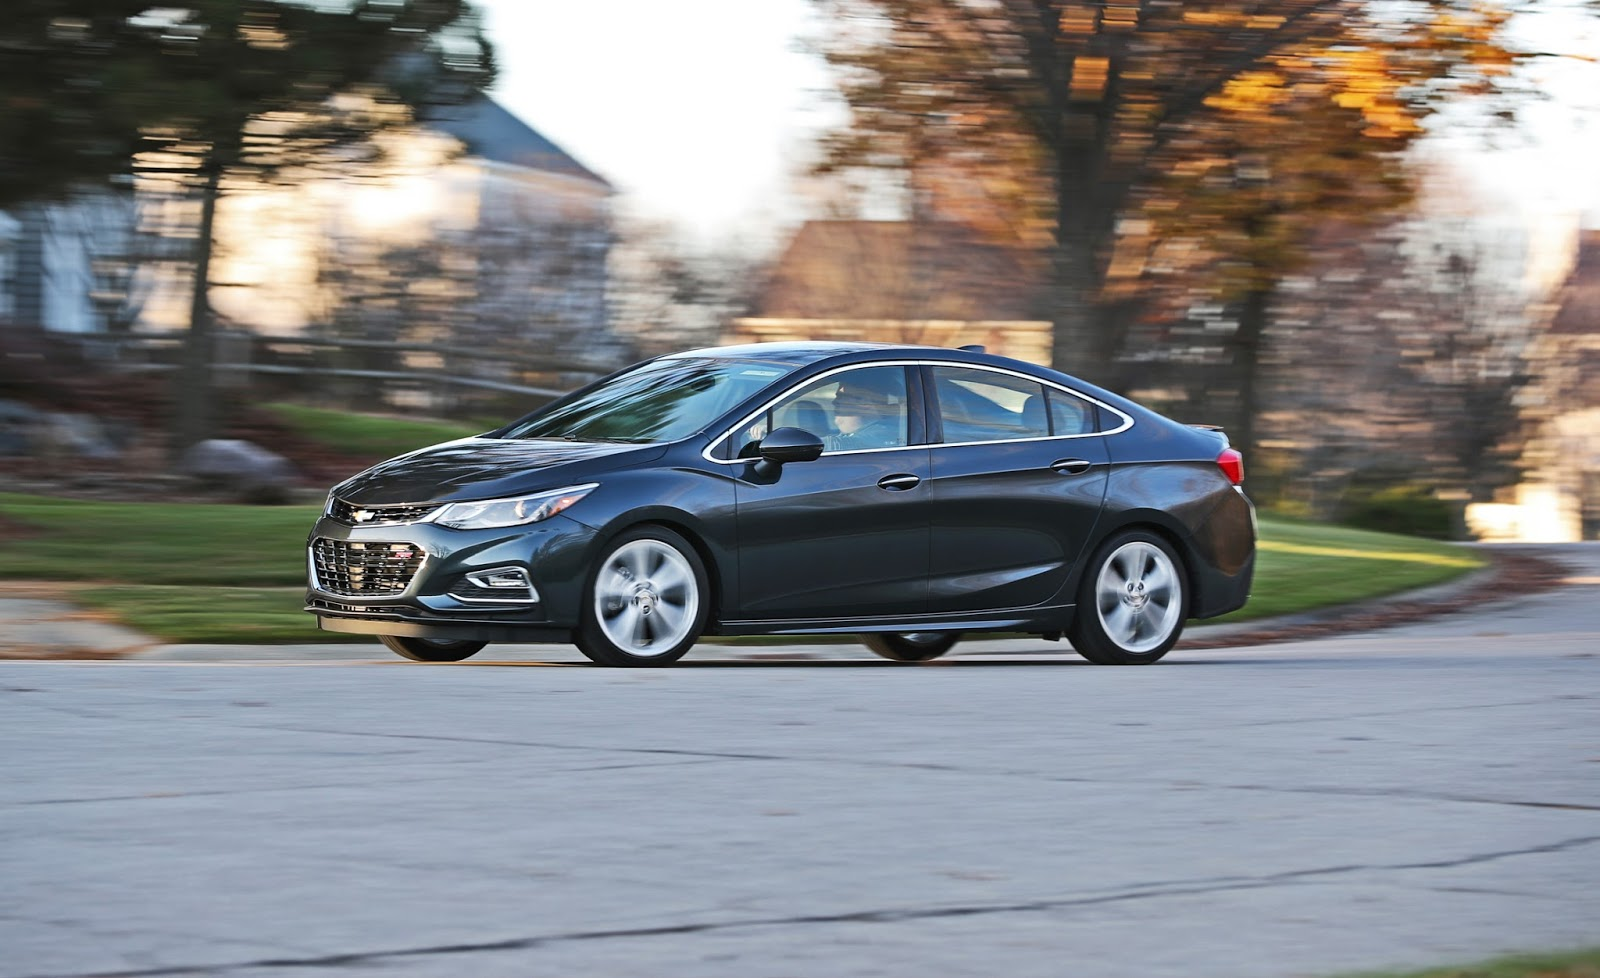 Chevrolet Cruze | All About Otomotif